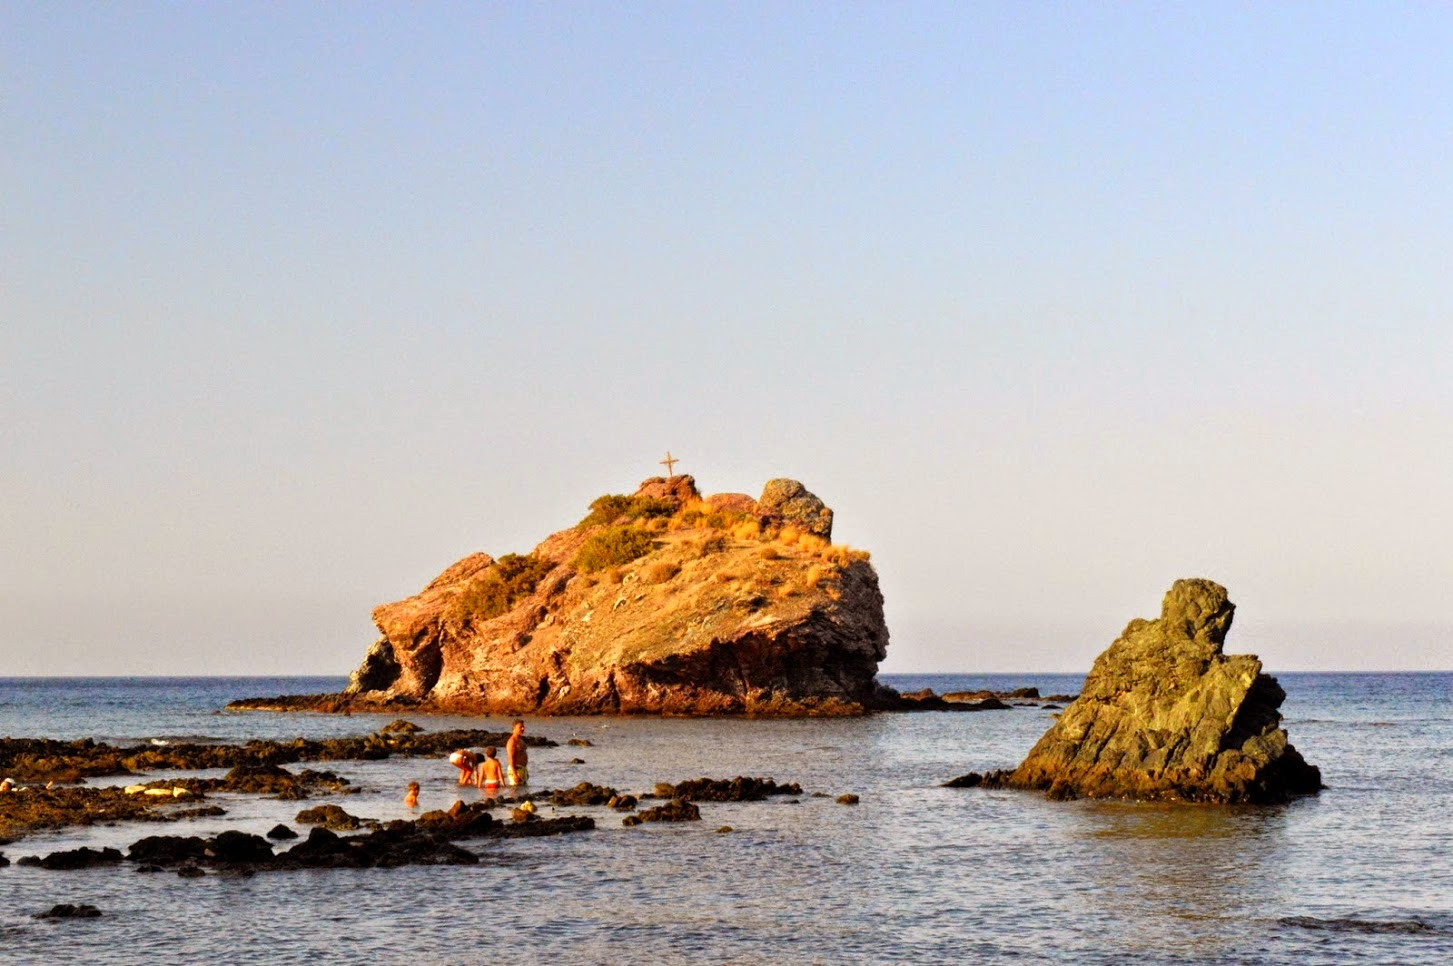 Baths of Aphrodite, in Cyprus. There is also a trail that you can walk around.